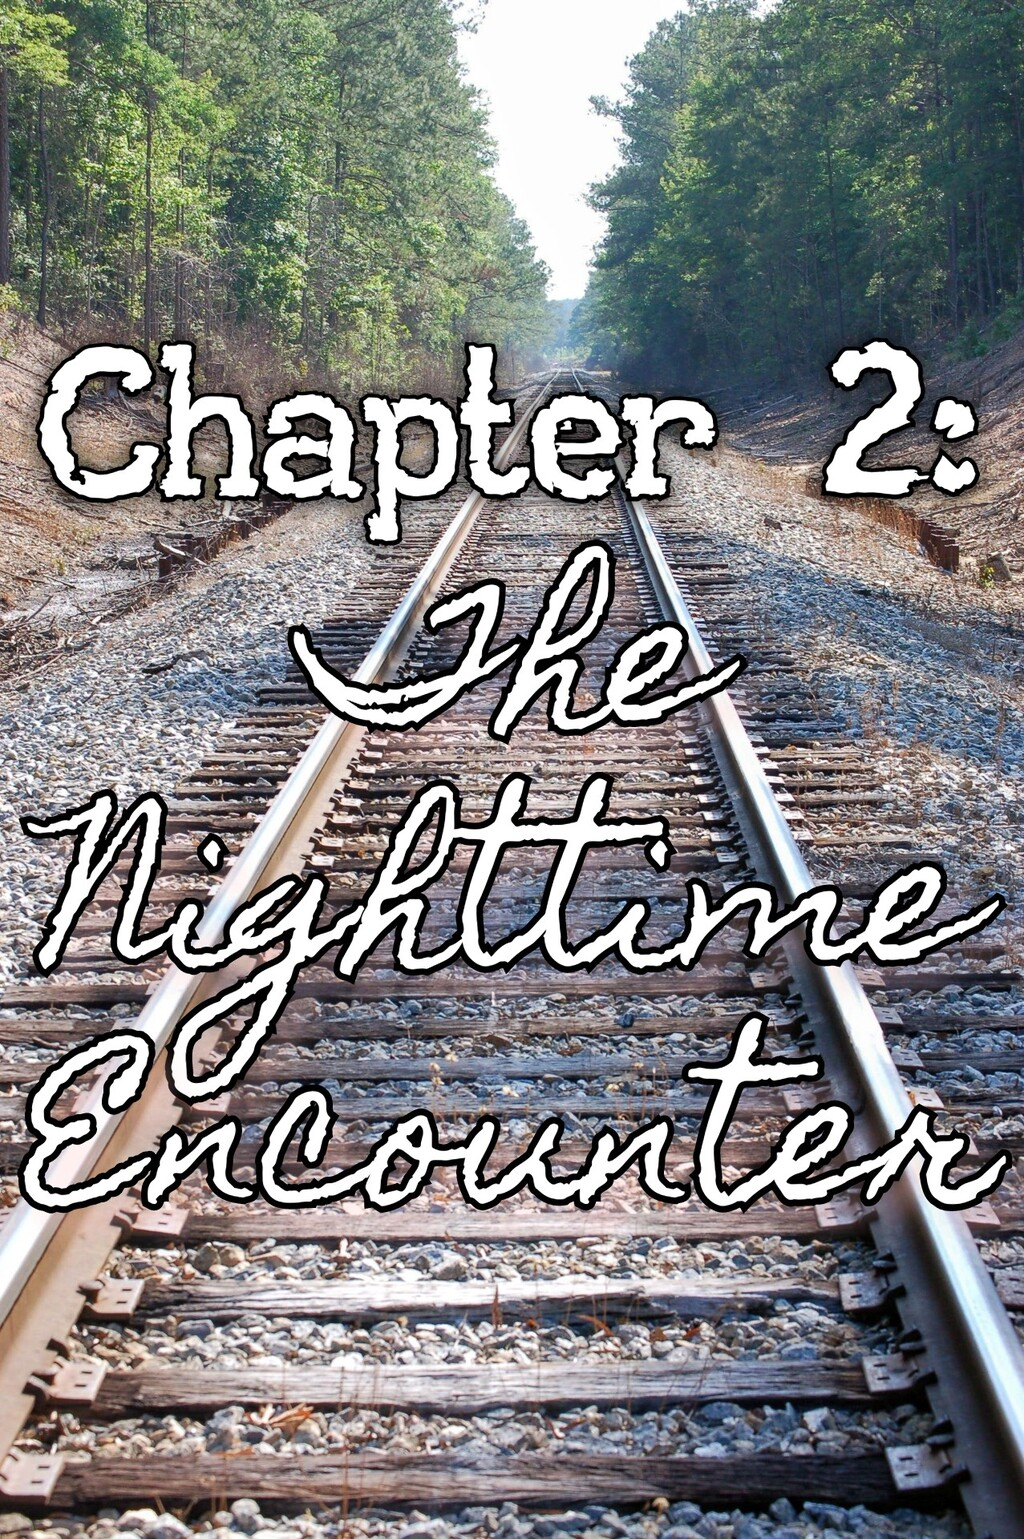 Most recent image: Chapter 2: The Nighttime Encounter